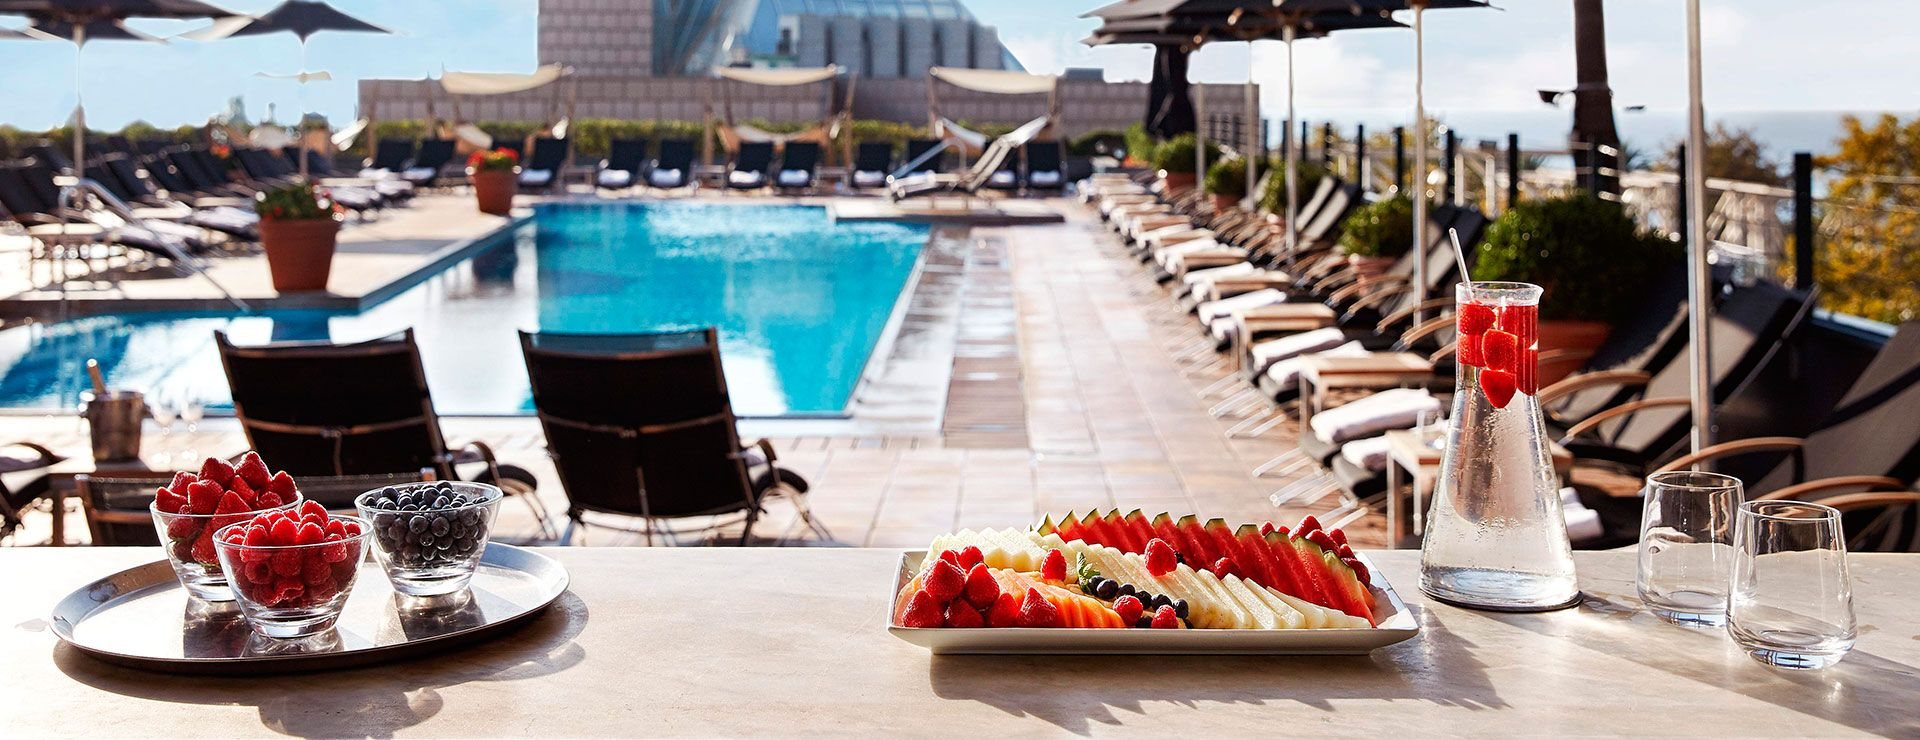 Terrace And Swimming Pool Overlooking The Sea Hotel Arts Barcelona